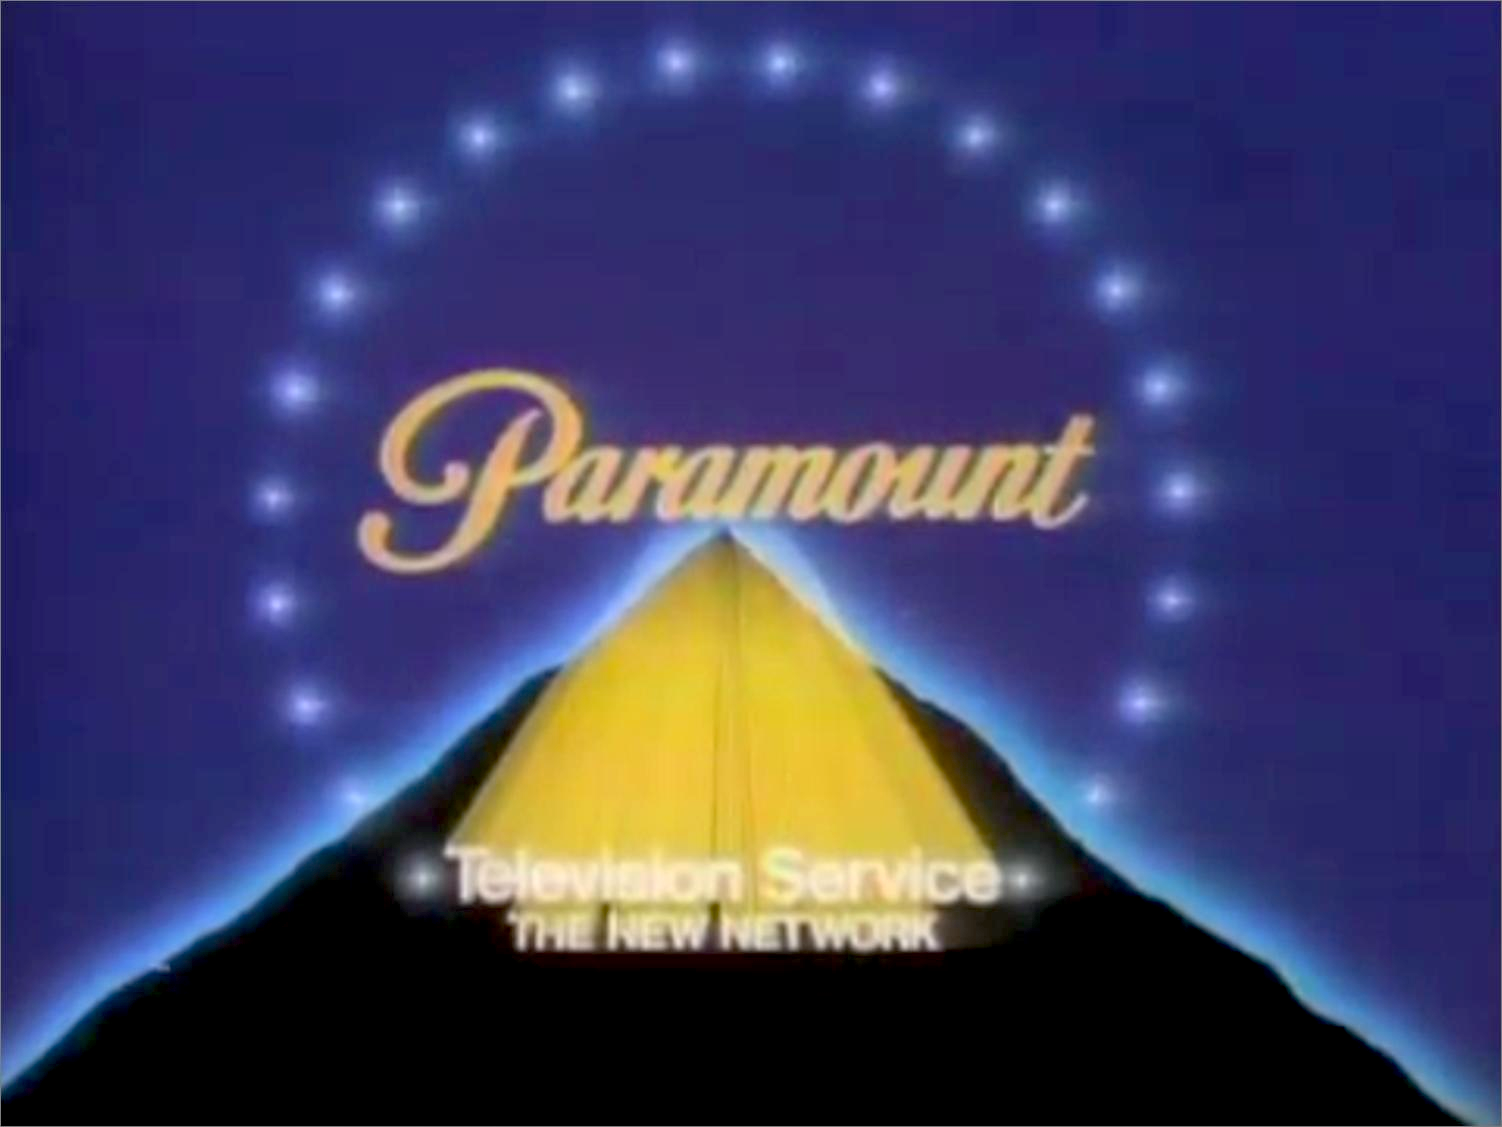 Paramount Television Service